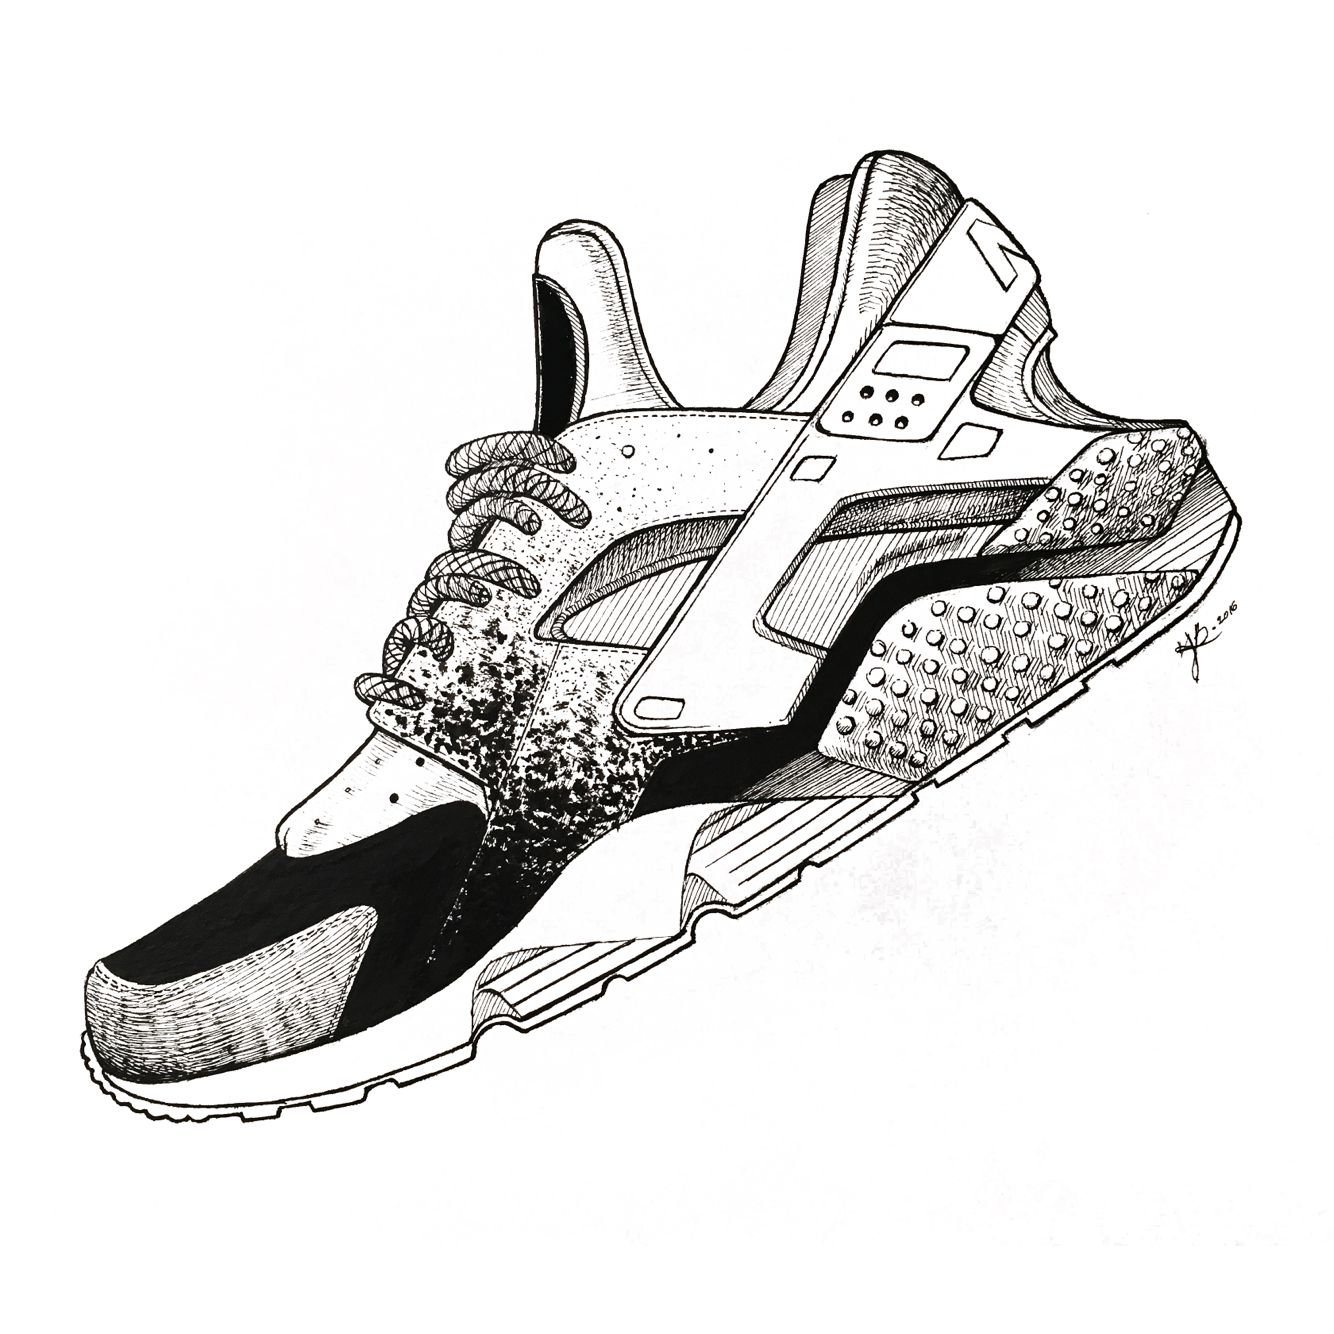 huge selection of e0b05 b9051 Yoonahbae.com sneaker illustration nike hurache Chaussure Nike Huarache,  Sketch Manga, Sneakers Wallpaper